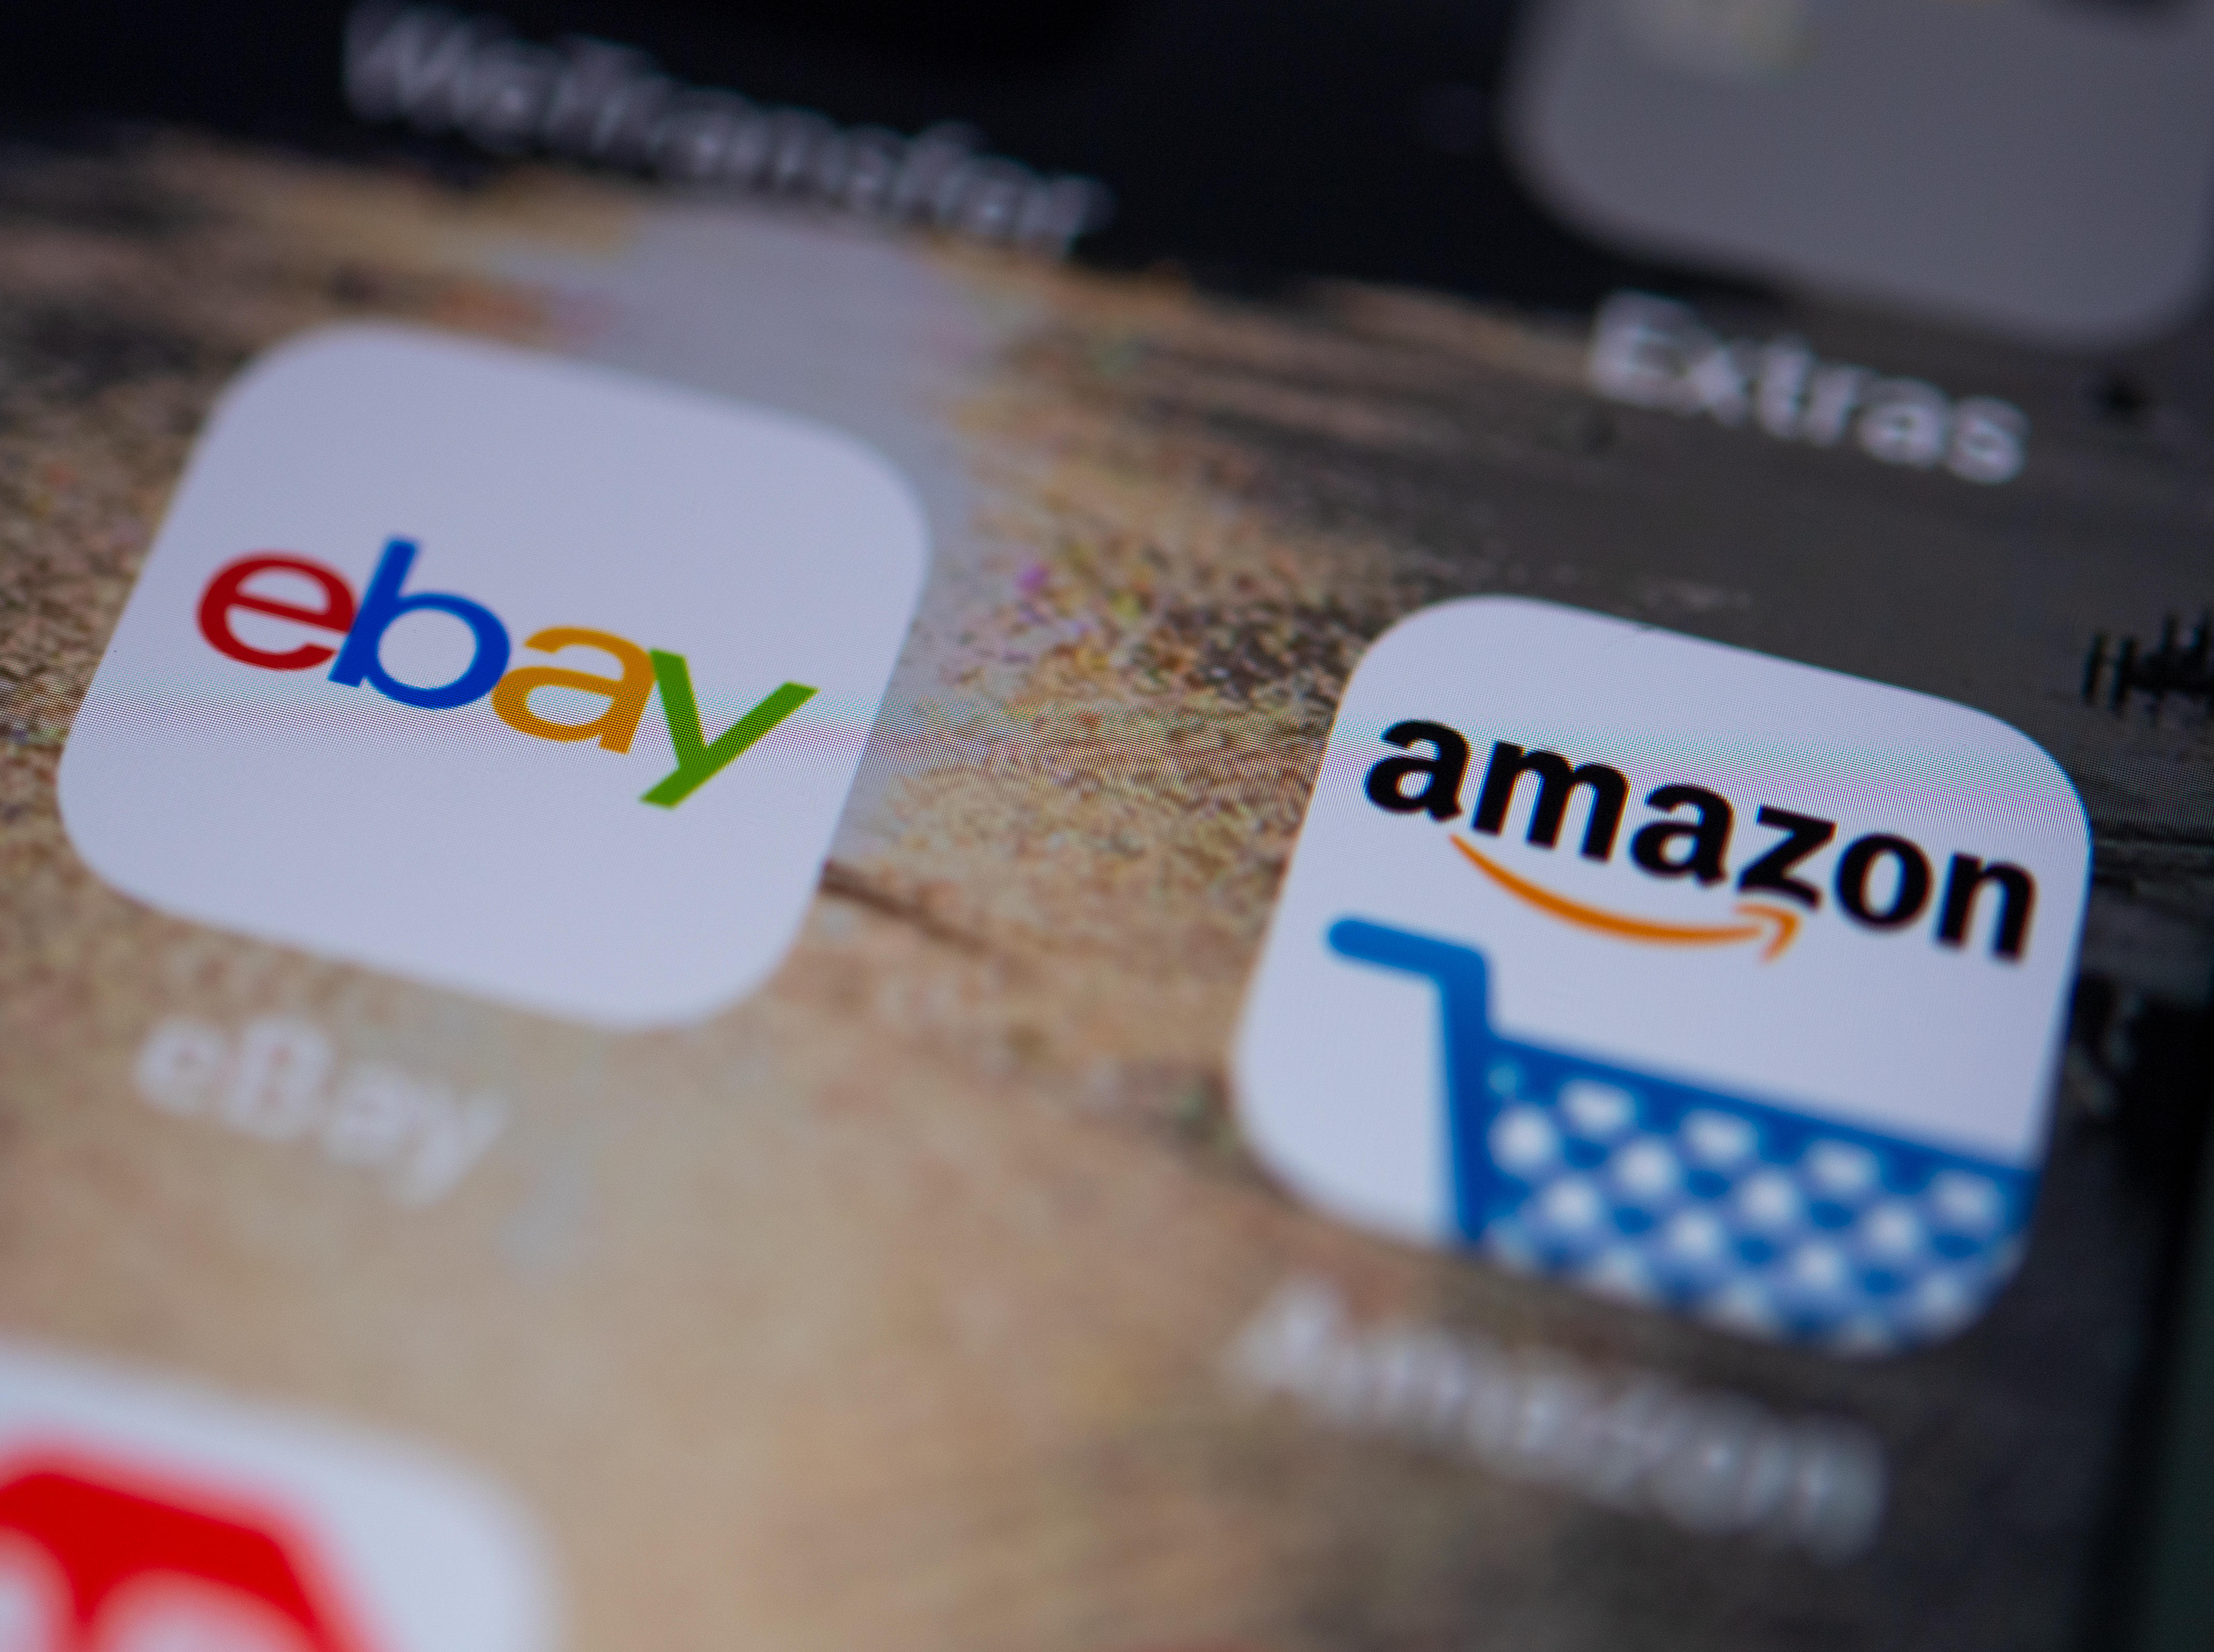 Apps from amazon and ebay